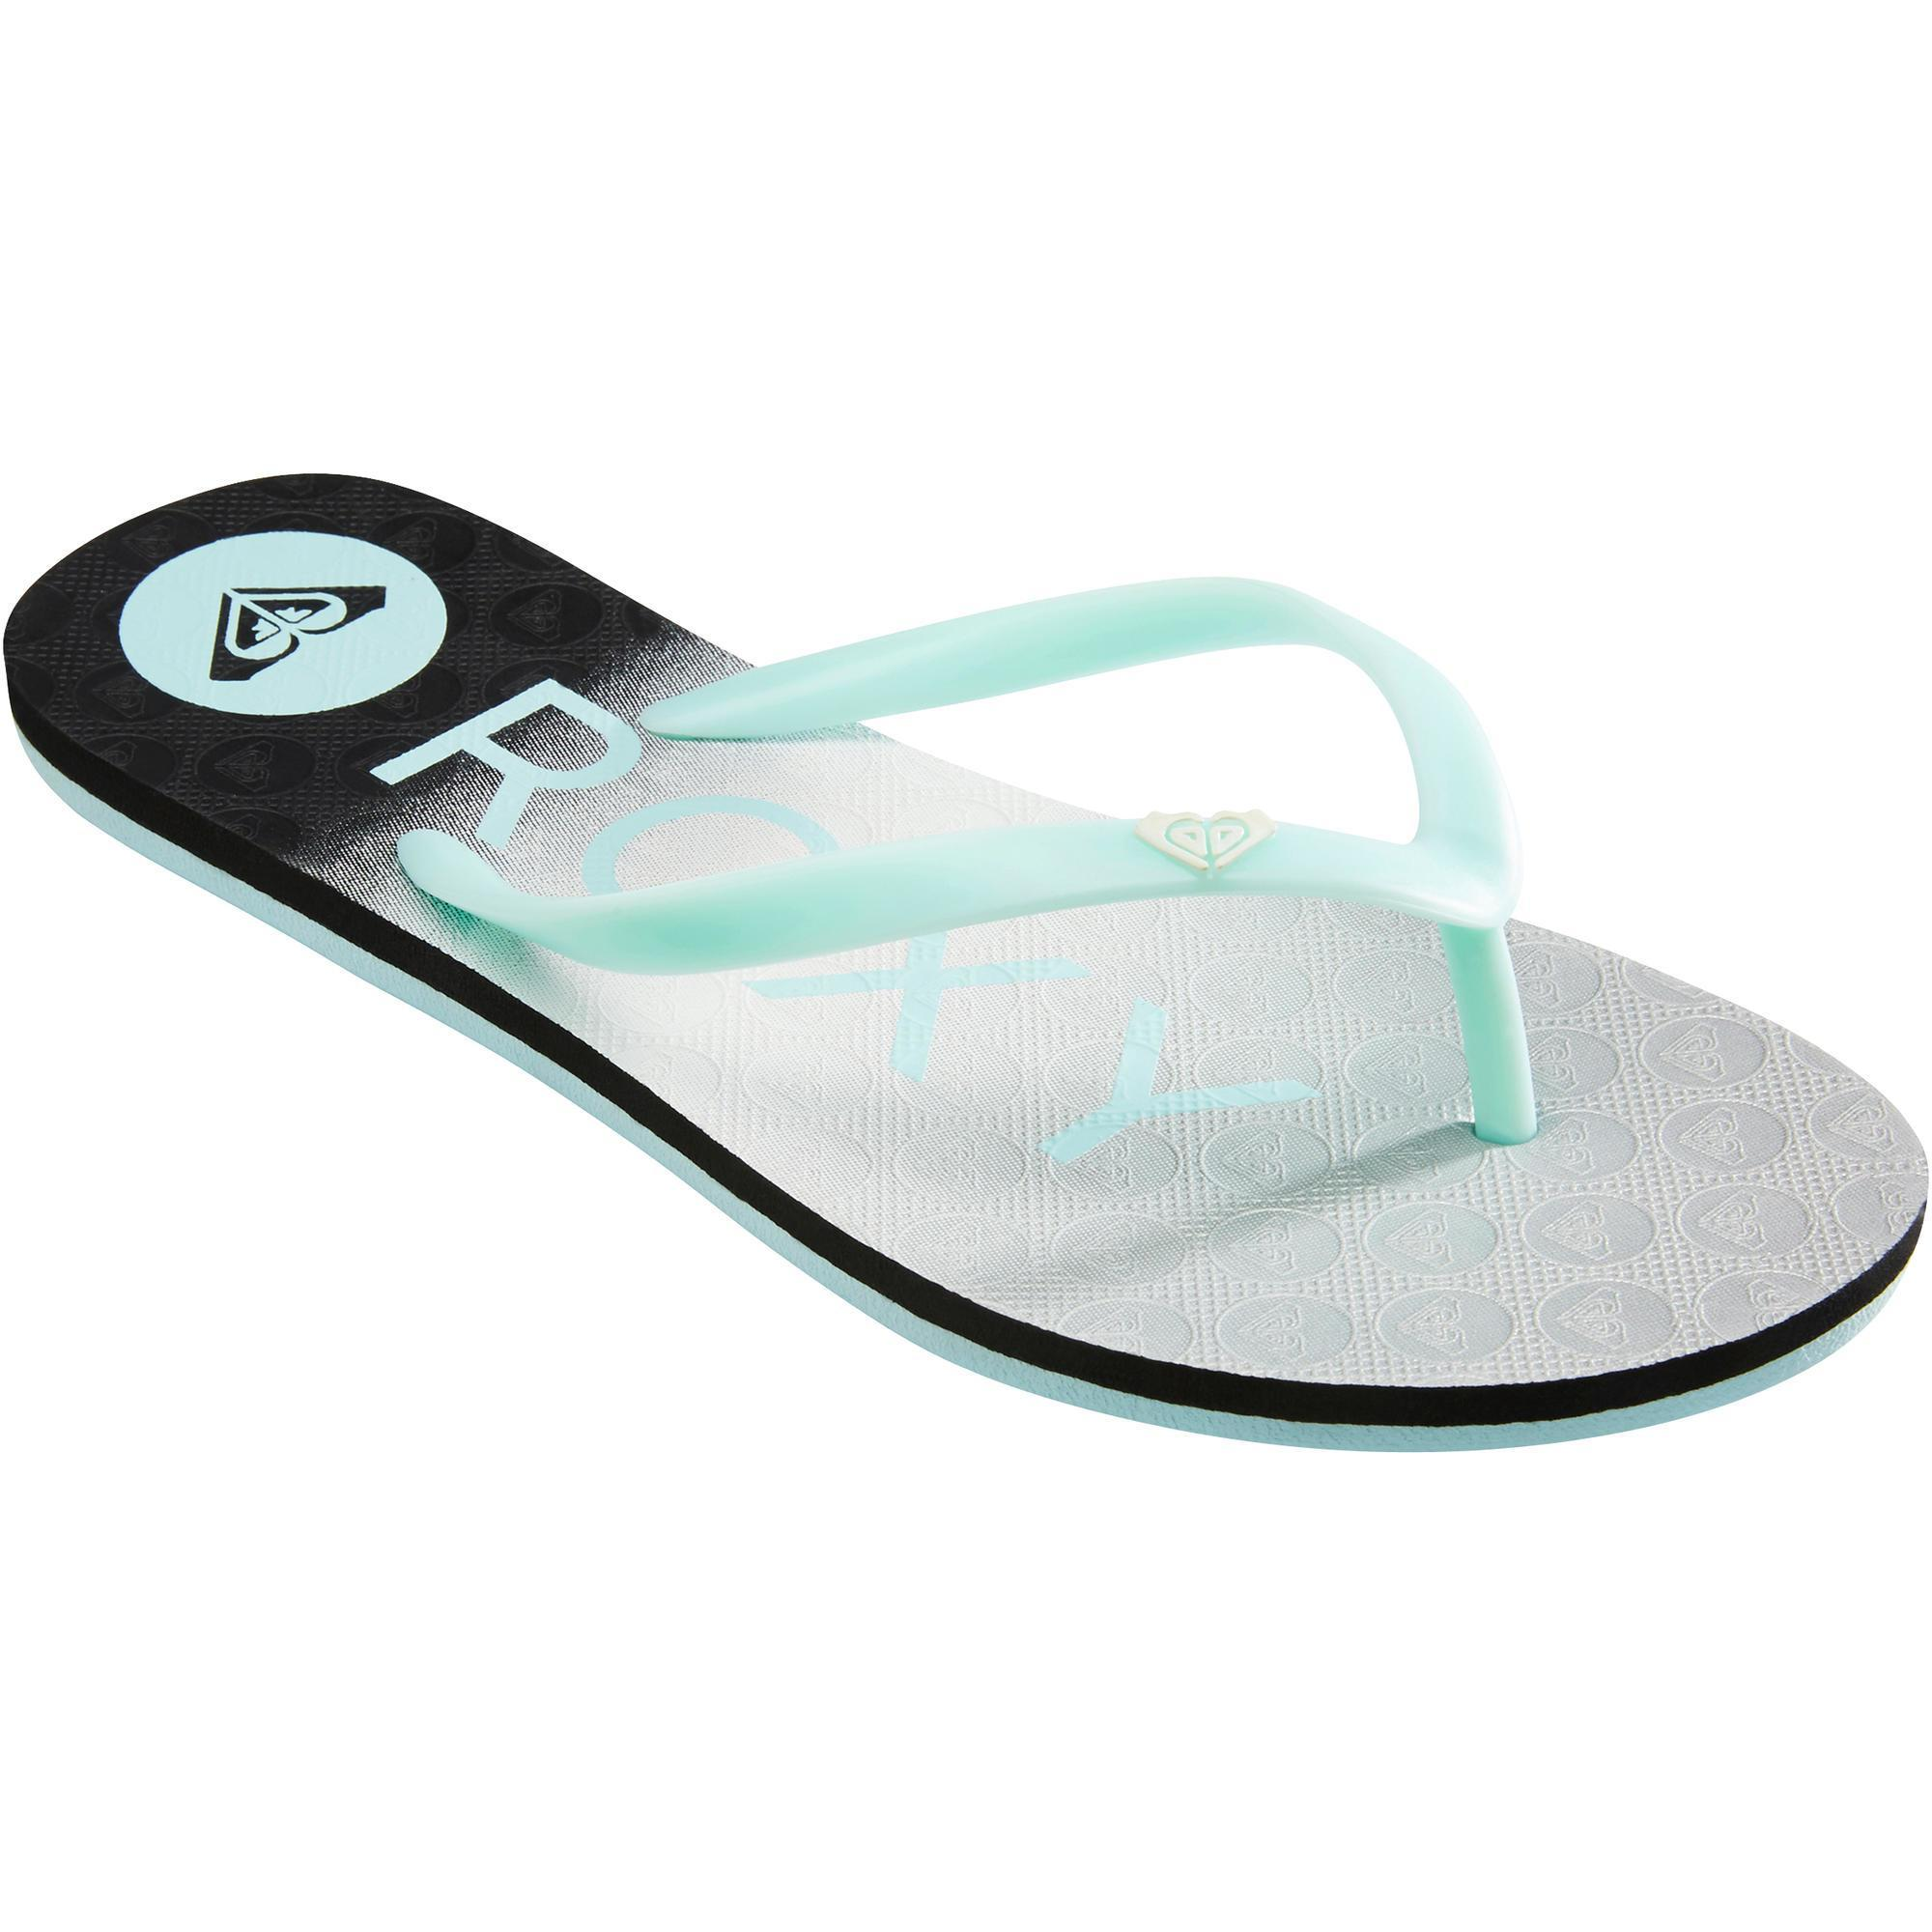 2417834 Roxy Slippers Sea blauw